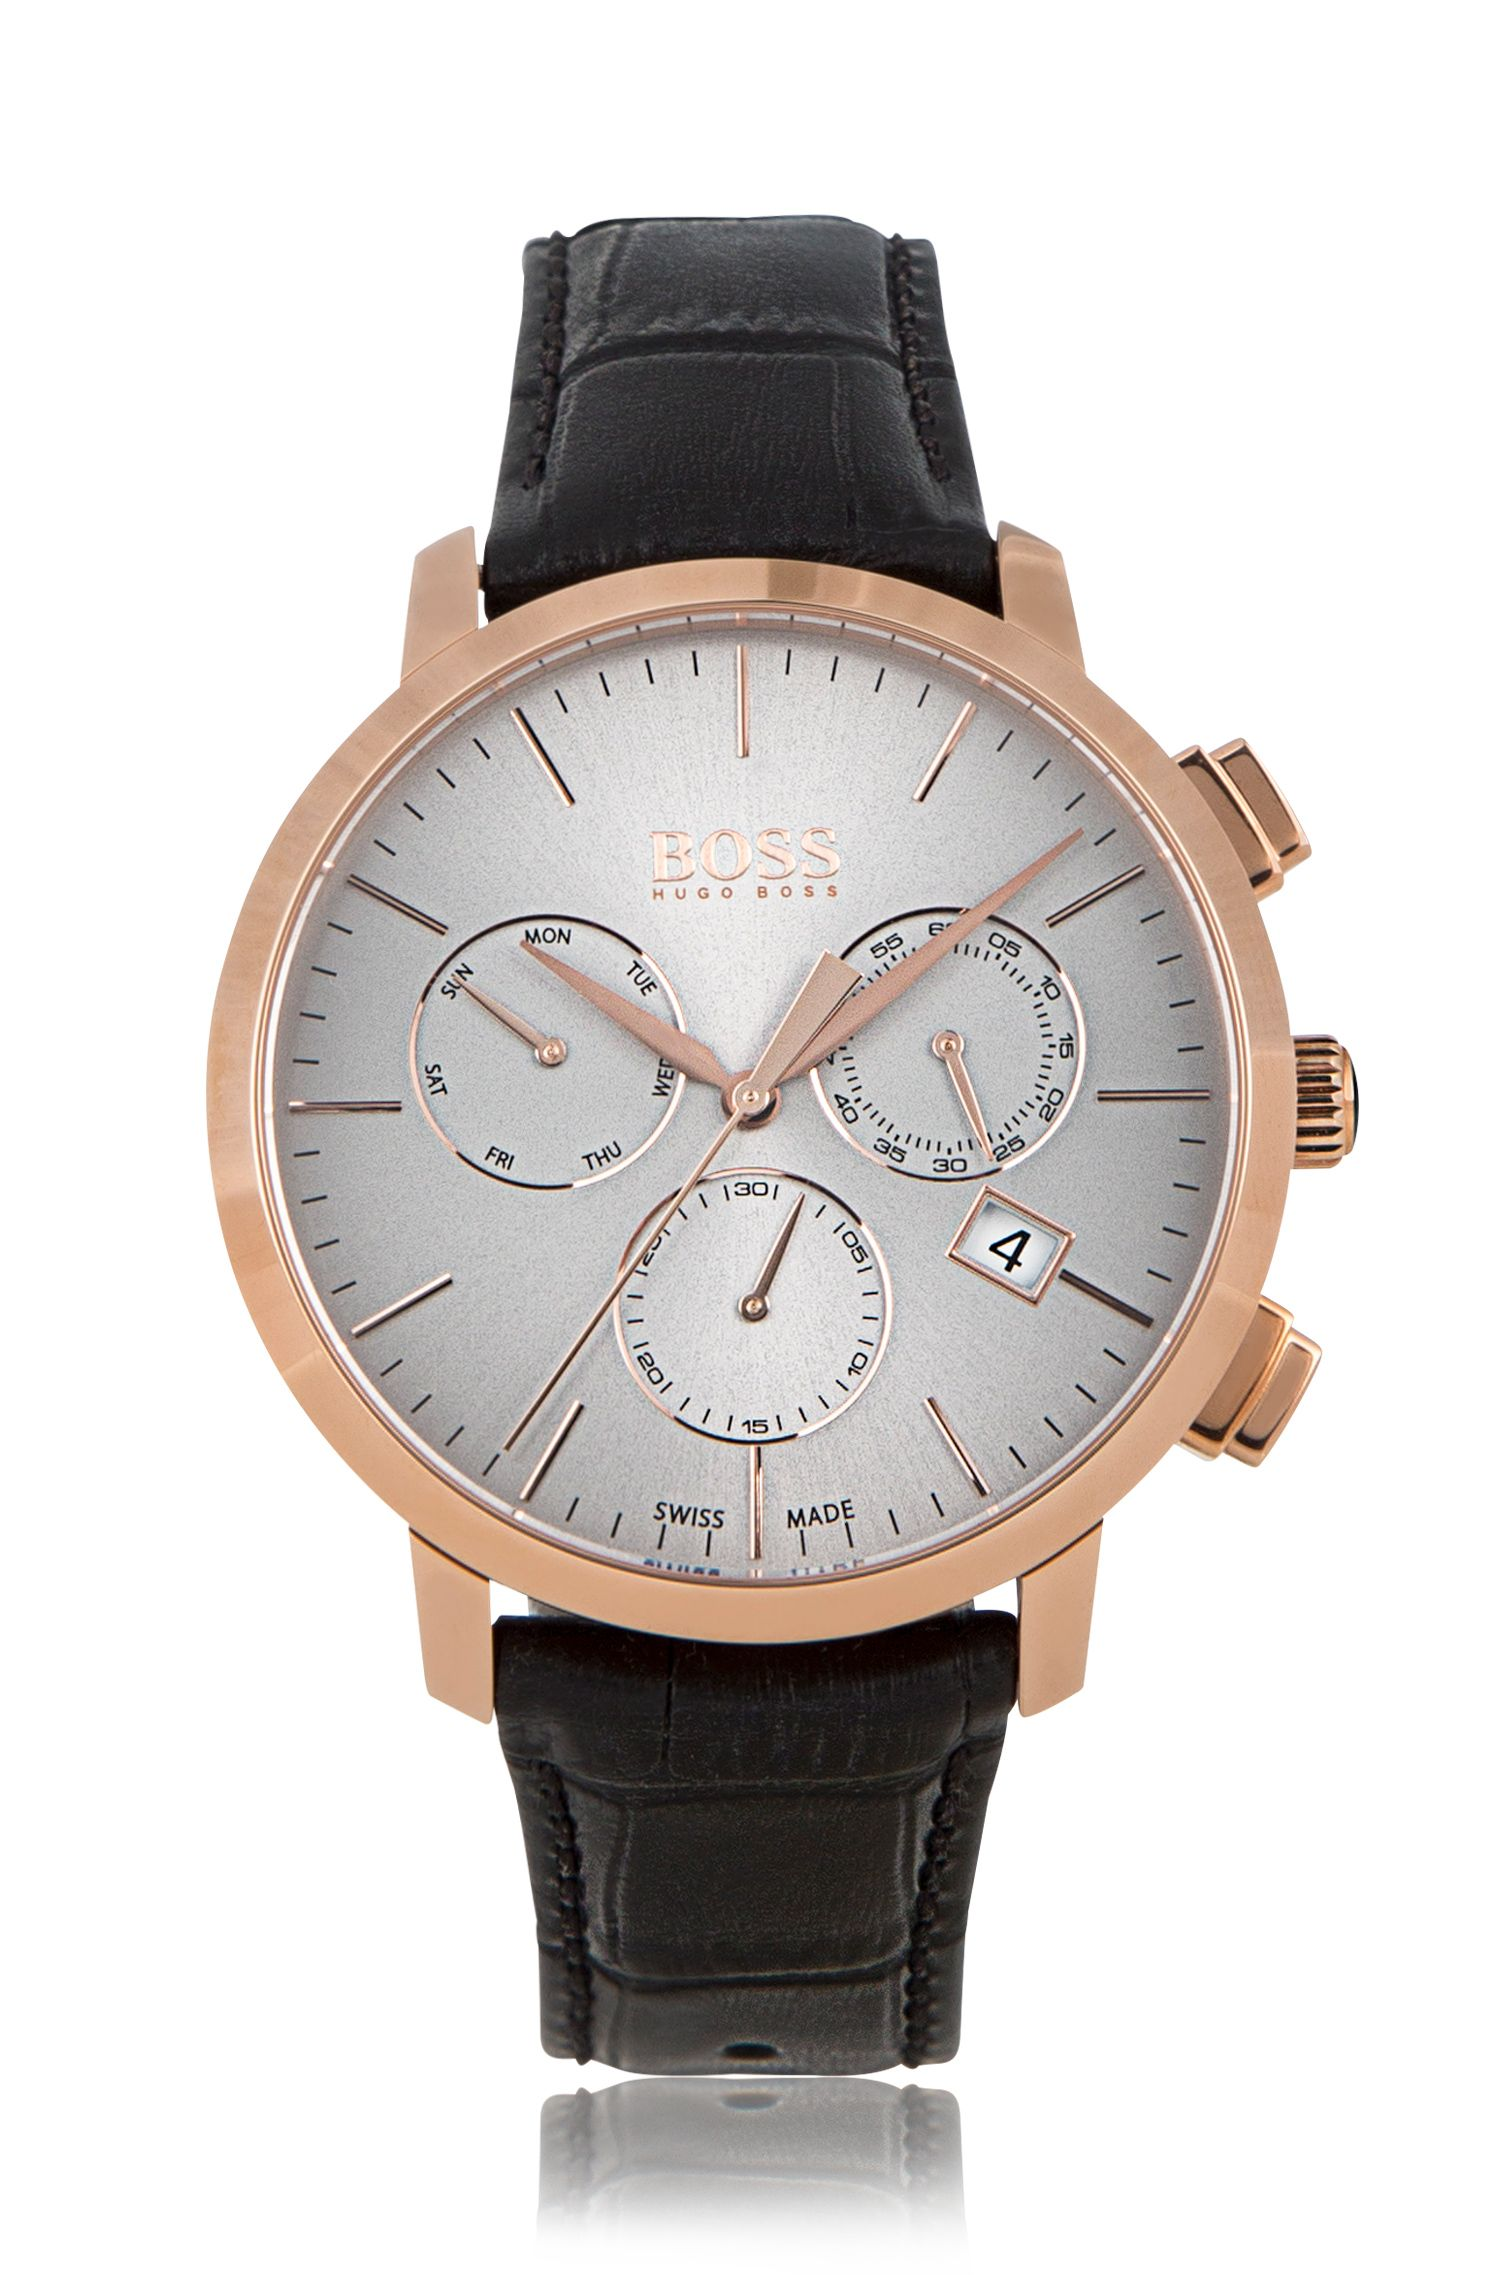 Rose-gold-plated three-eye chronograph watch with leather strap